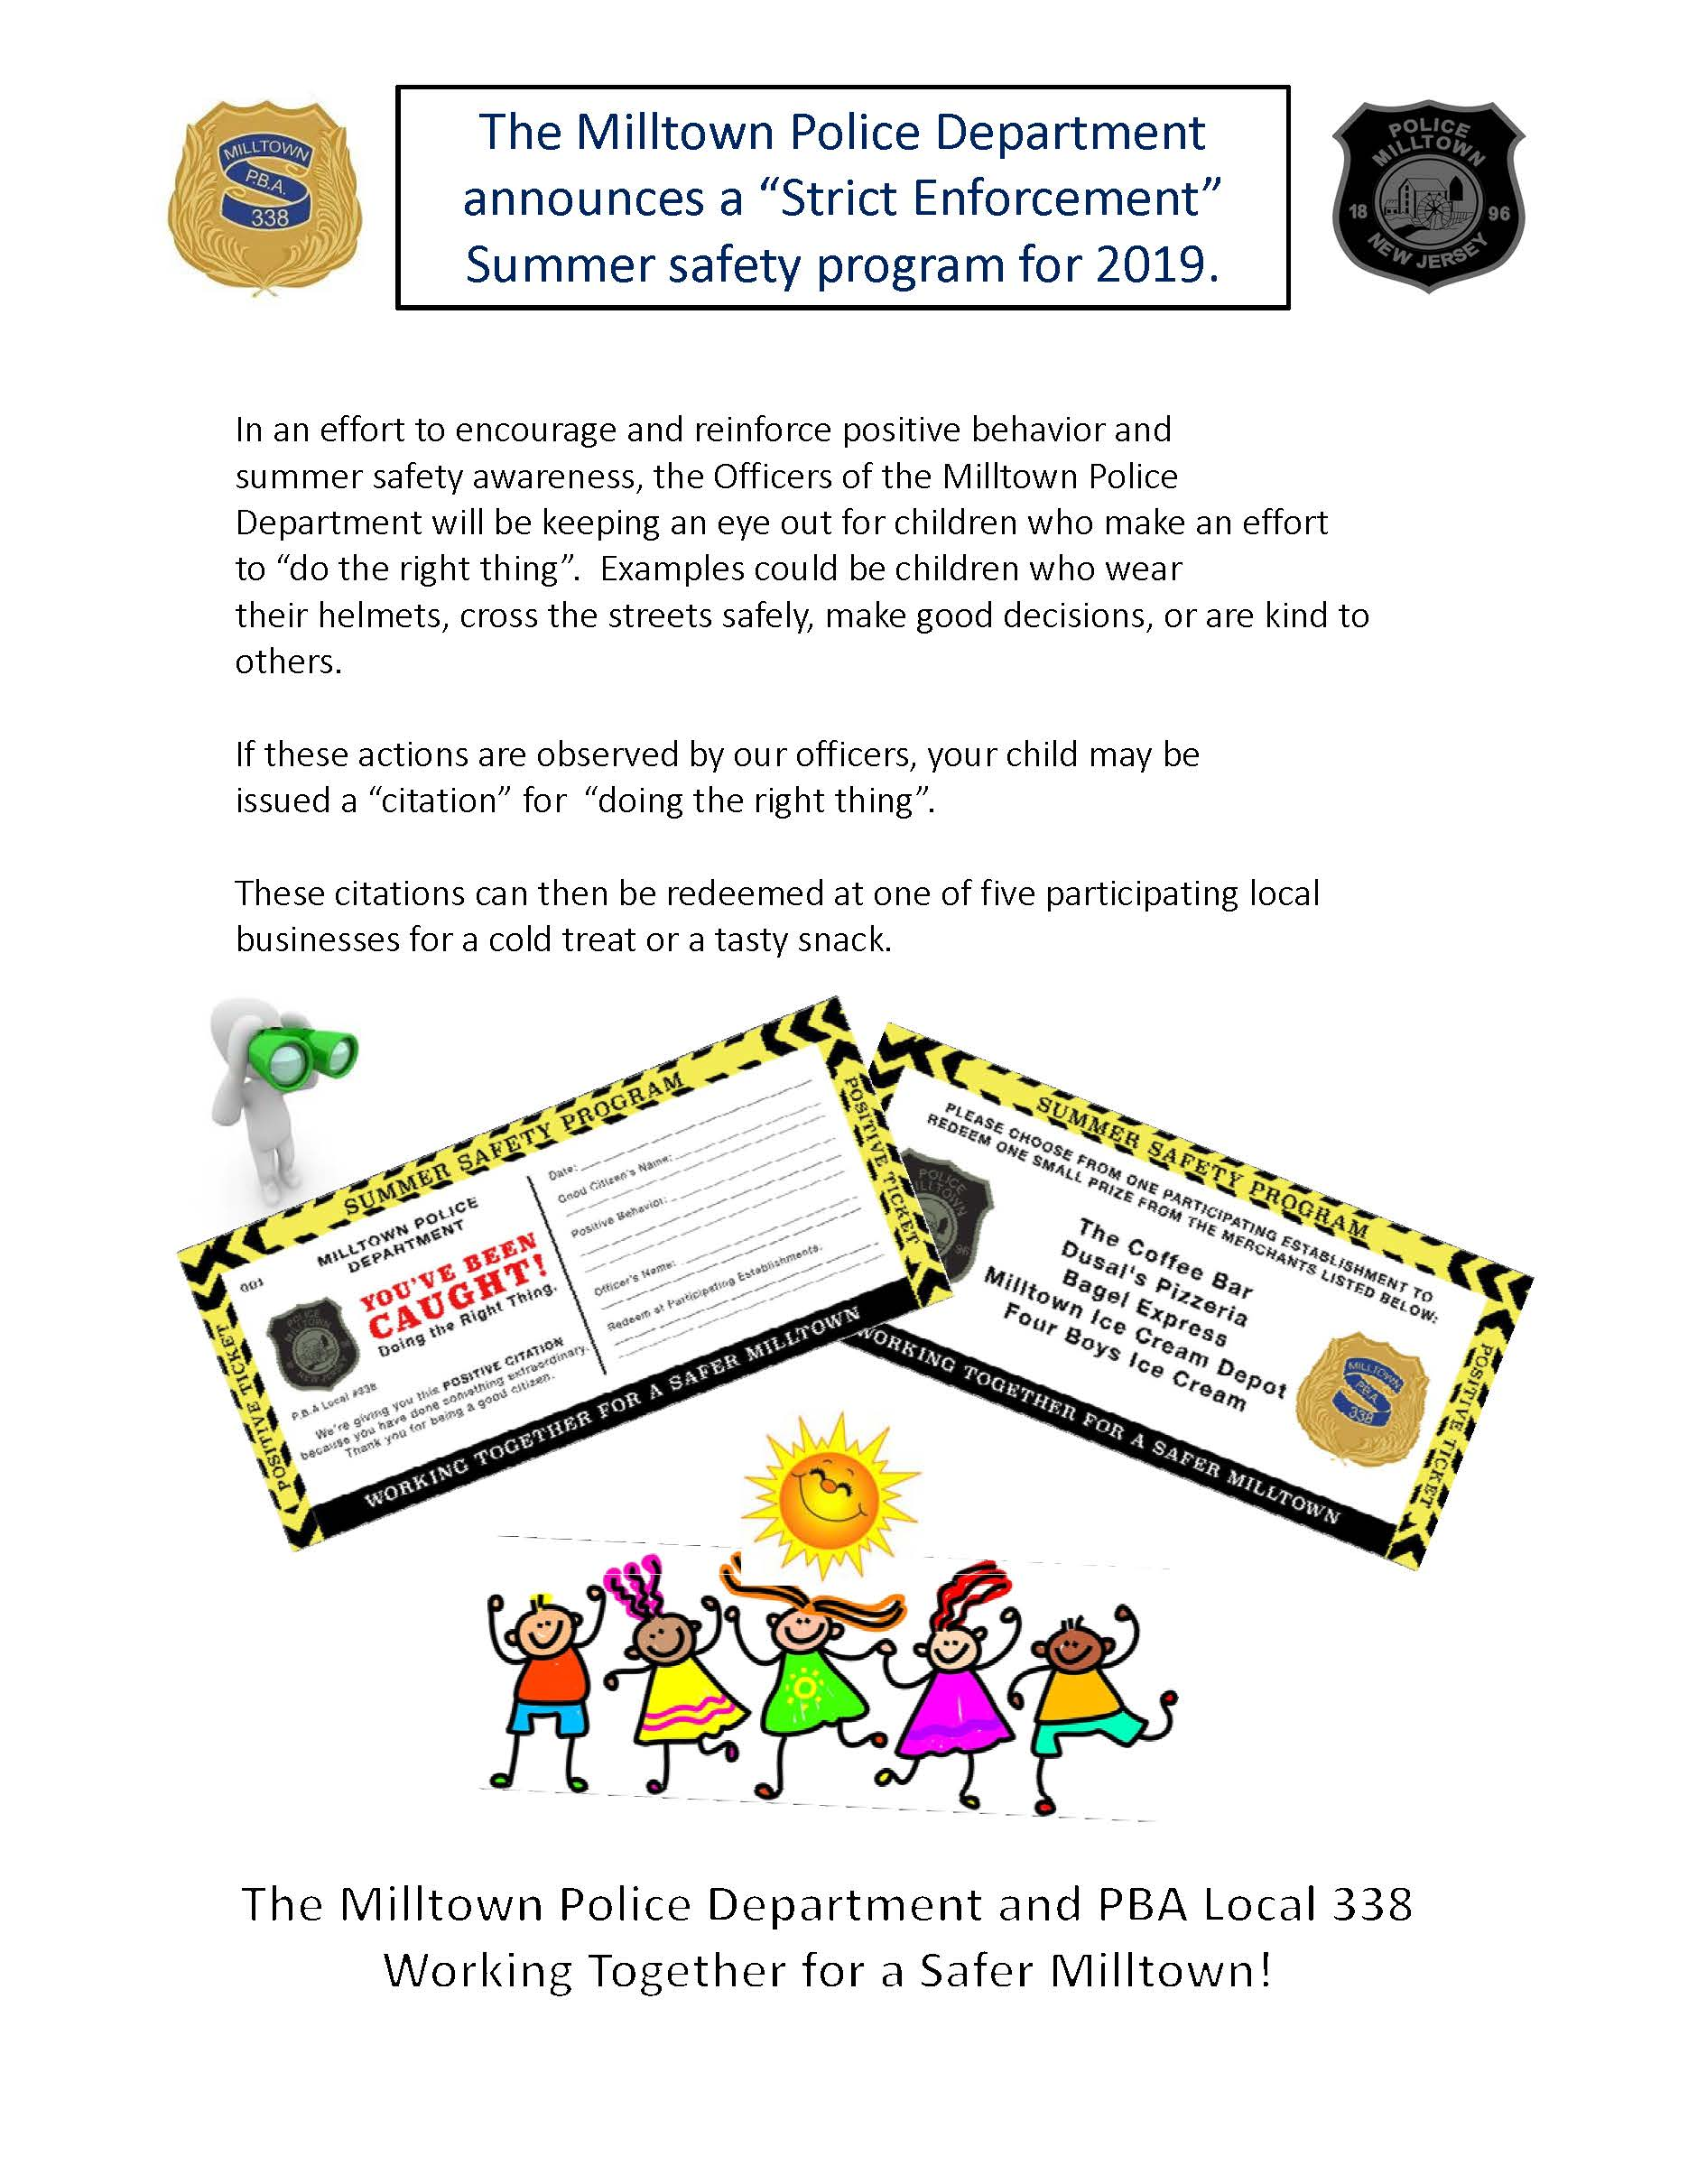 Summer Safety Program news flash2019